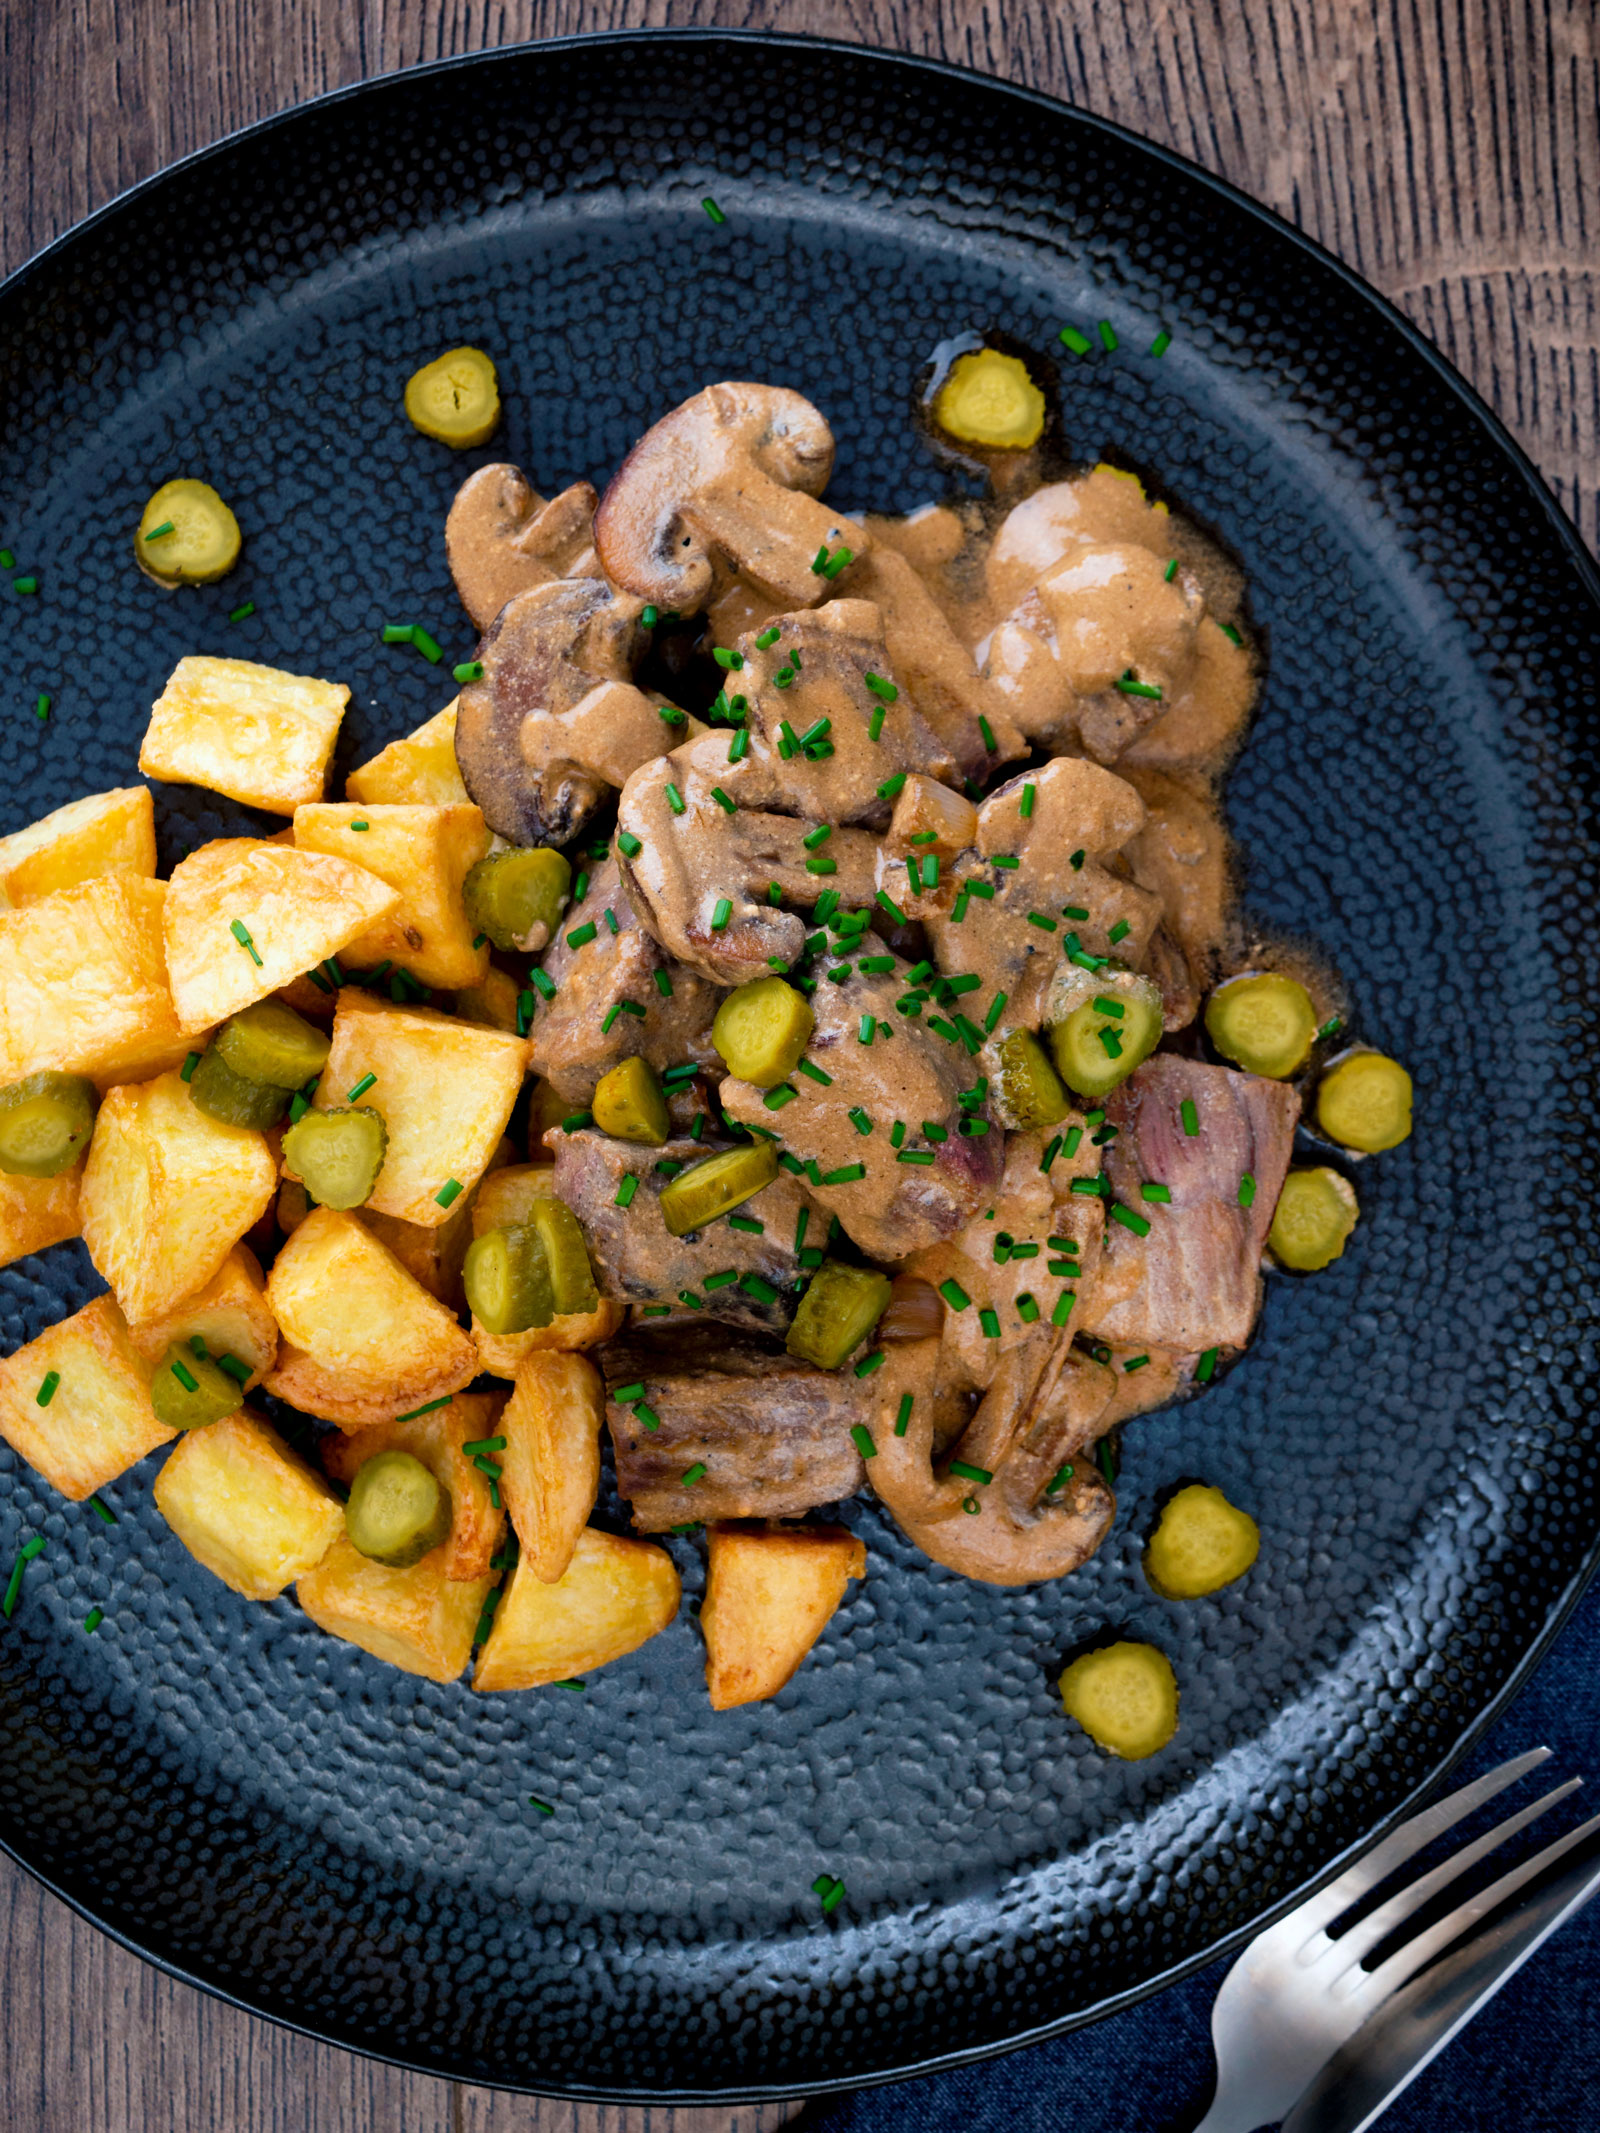 Overhead beef and mushroom stroganoff served with fried potatoes and pickles.